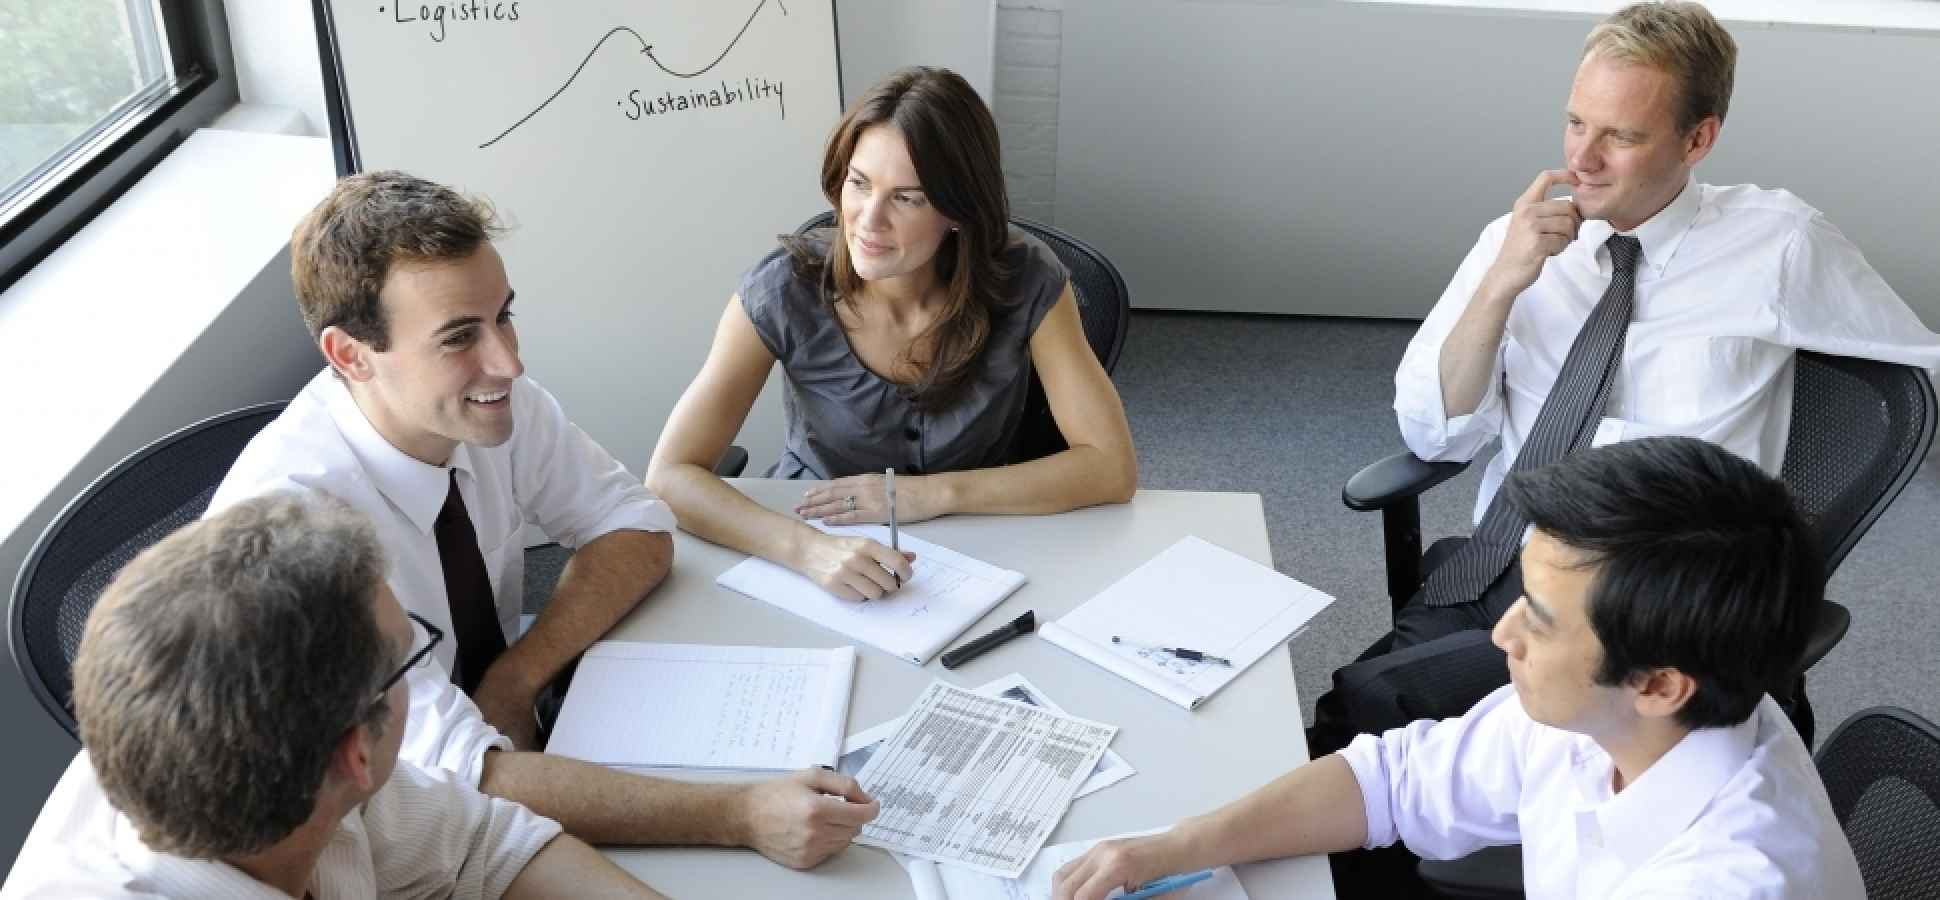 The Playbook for Consistently Successful Meetings